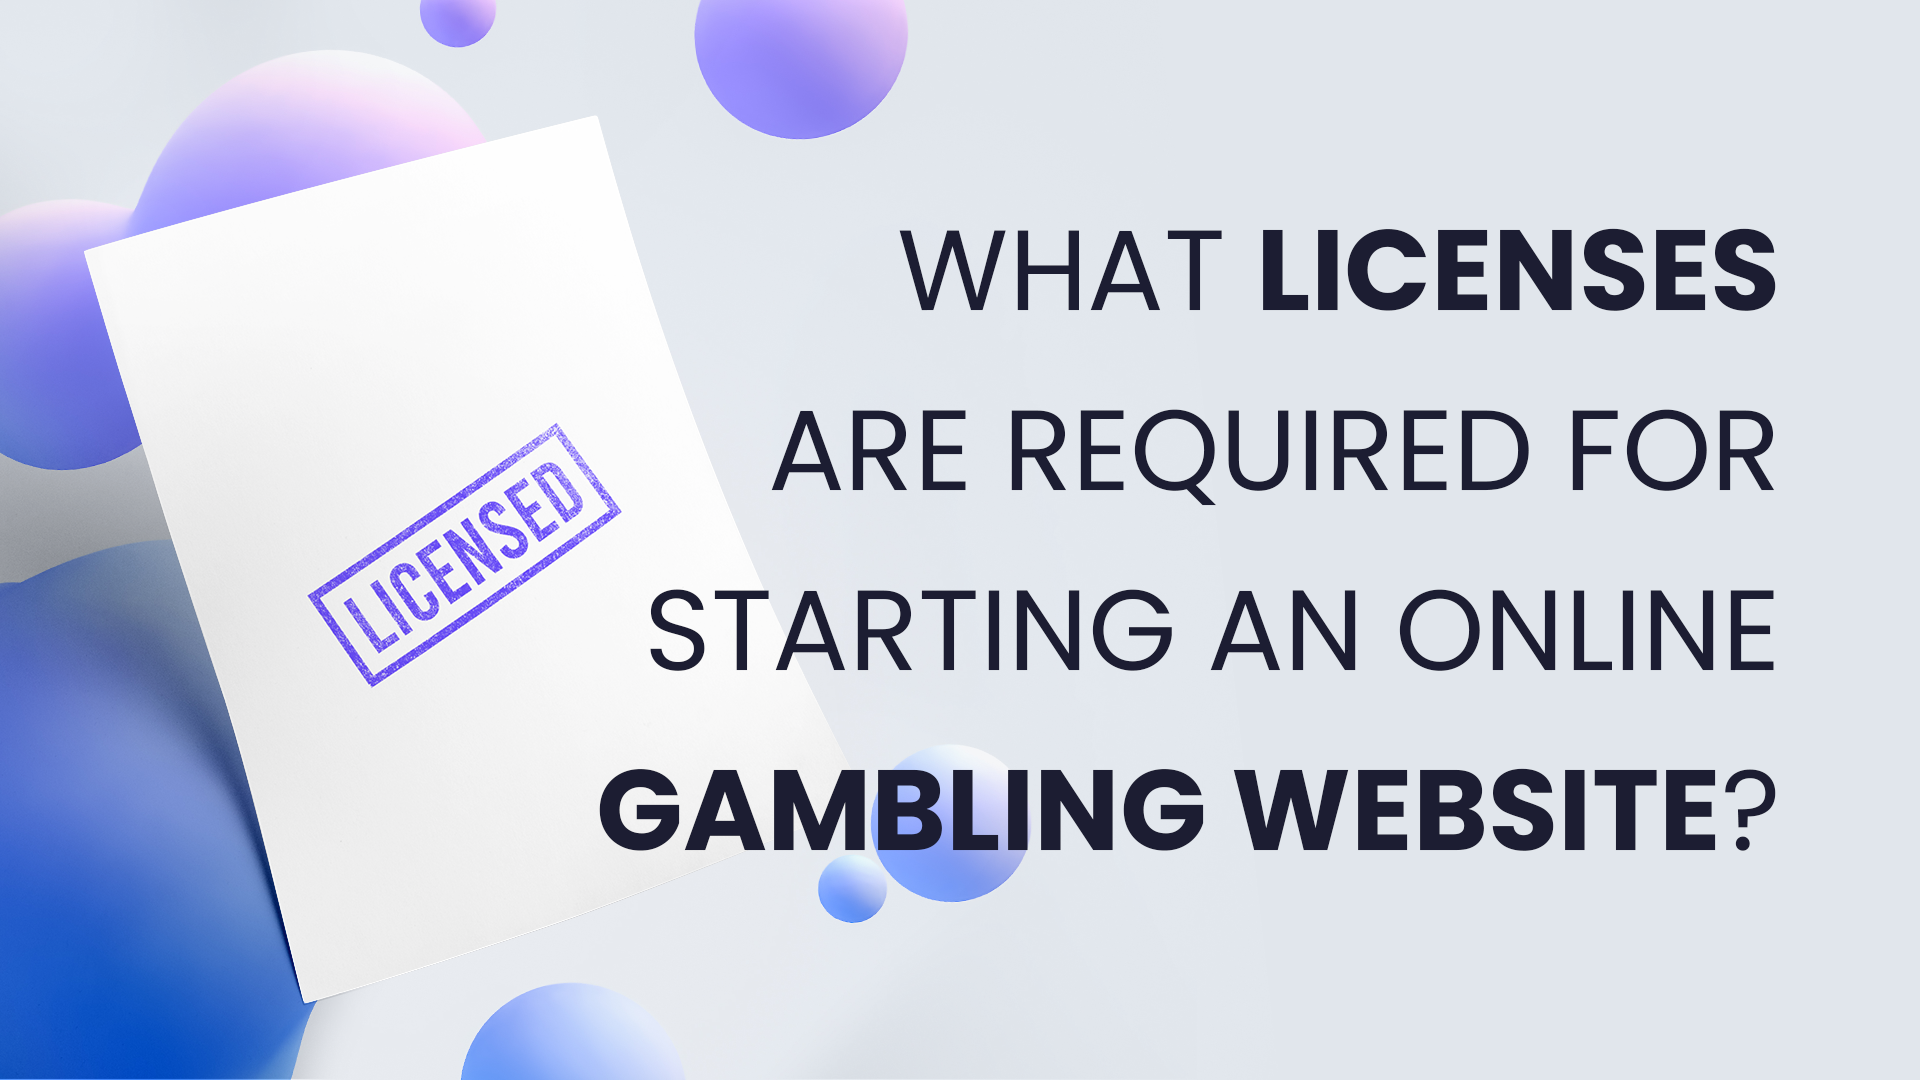 What Licenses are Required for Starting an Online Gambling Website?